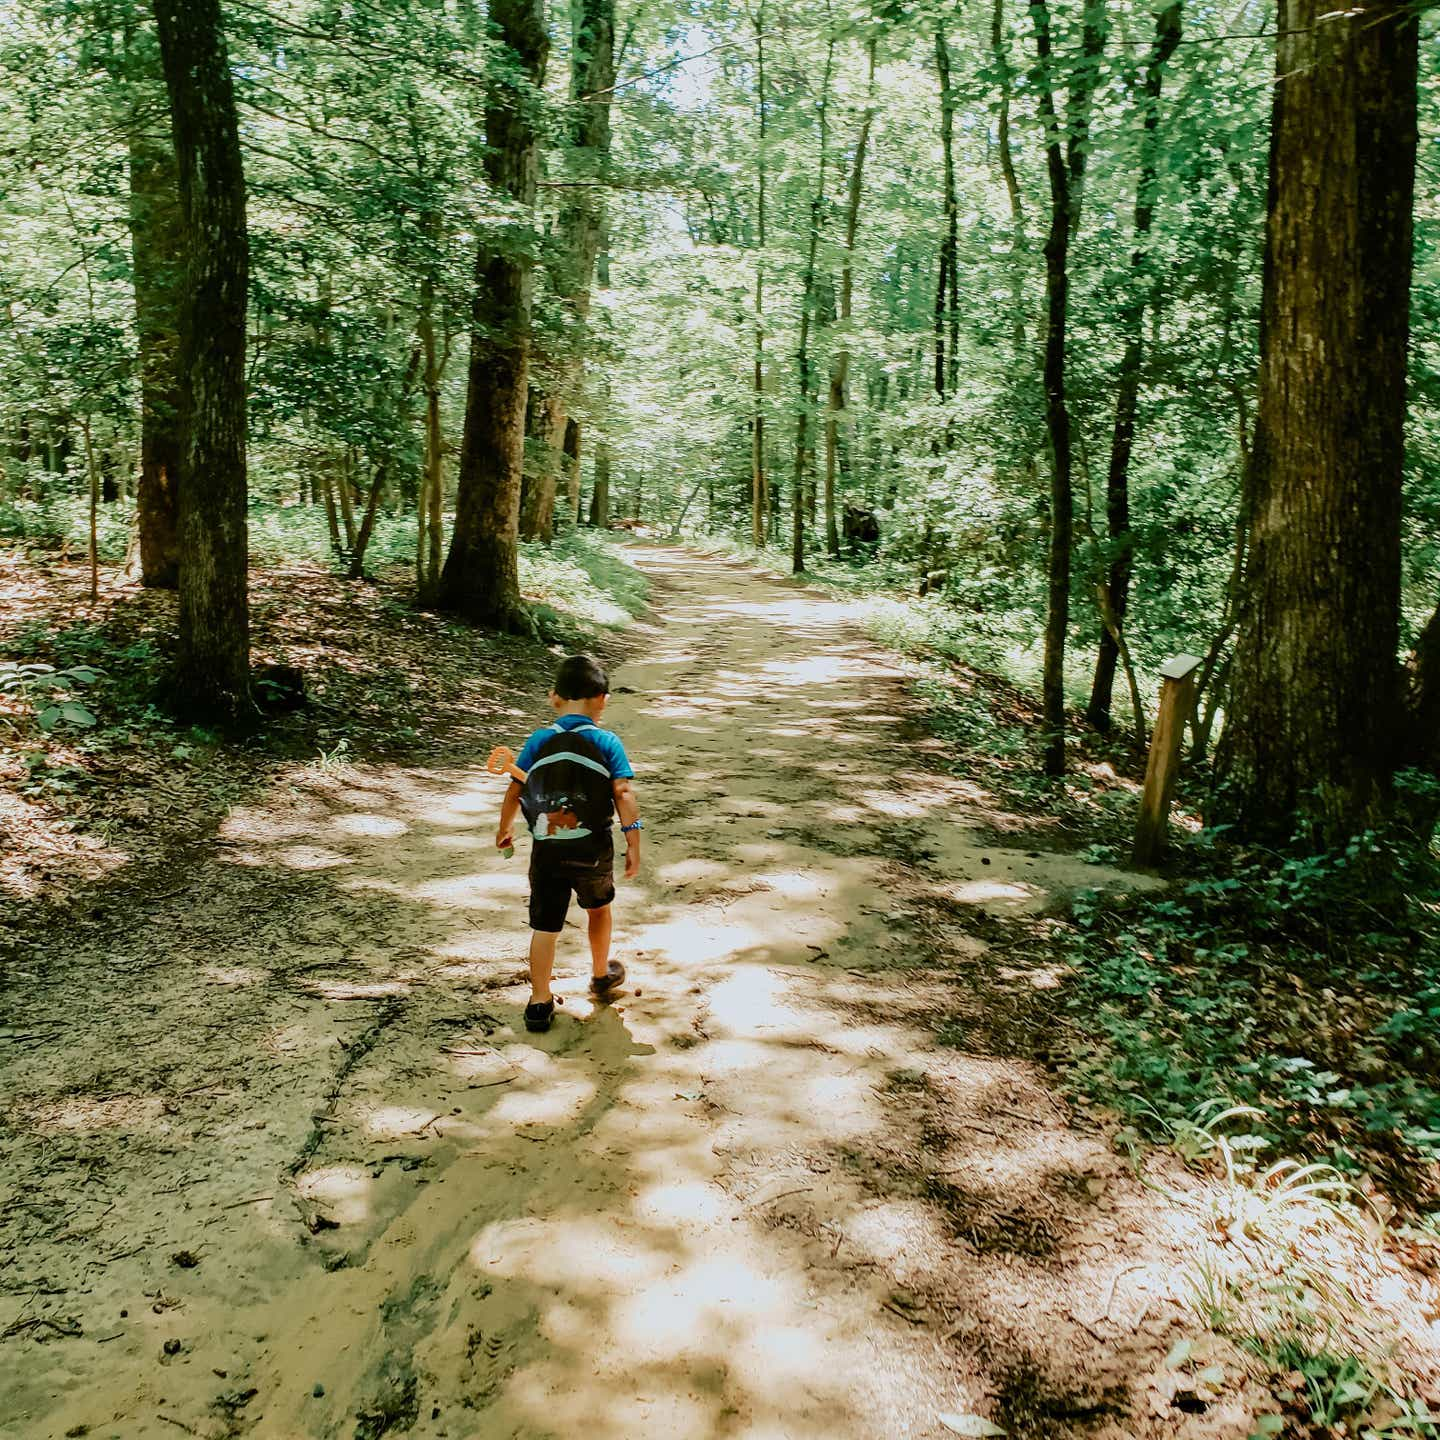 Angelica's son hiking through a wooded nature trail with his backpack on.